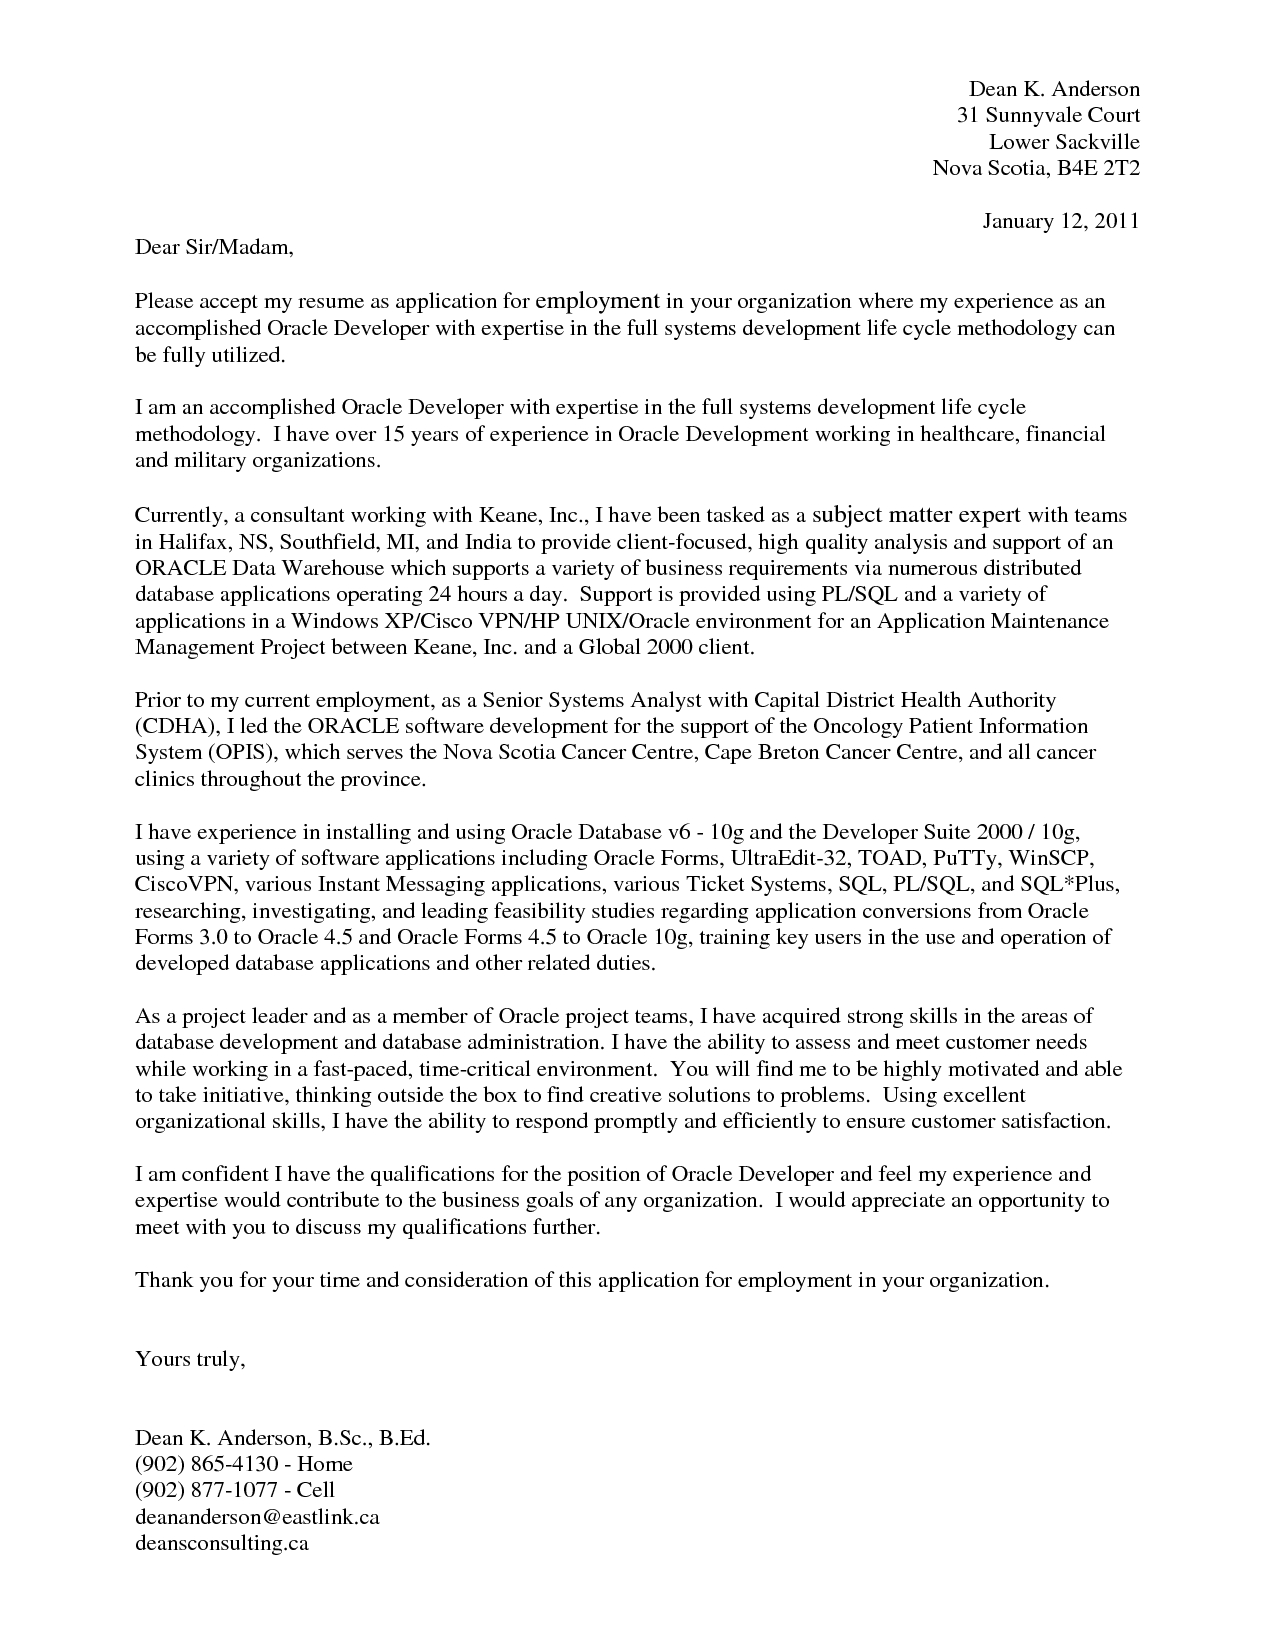 Medical Consult Letter Template - Healthcare Consulting Cover Letter Acurnamedia